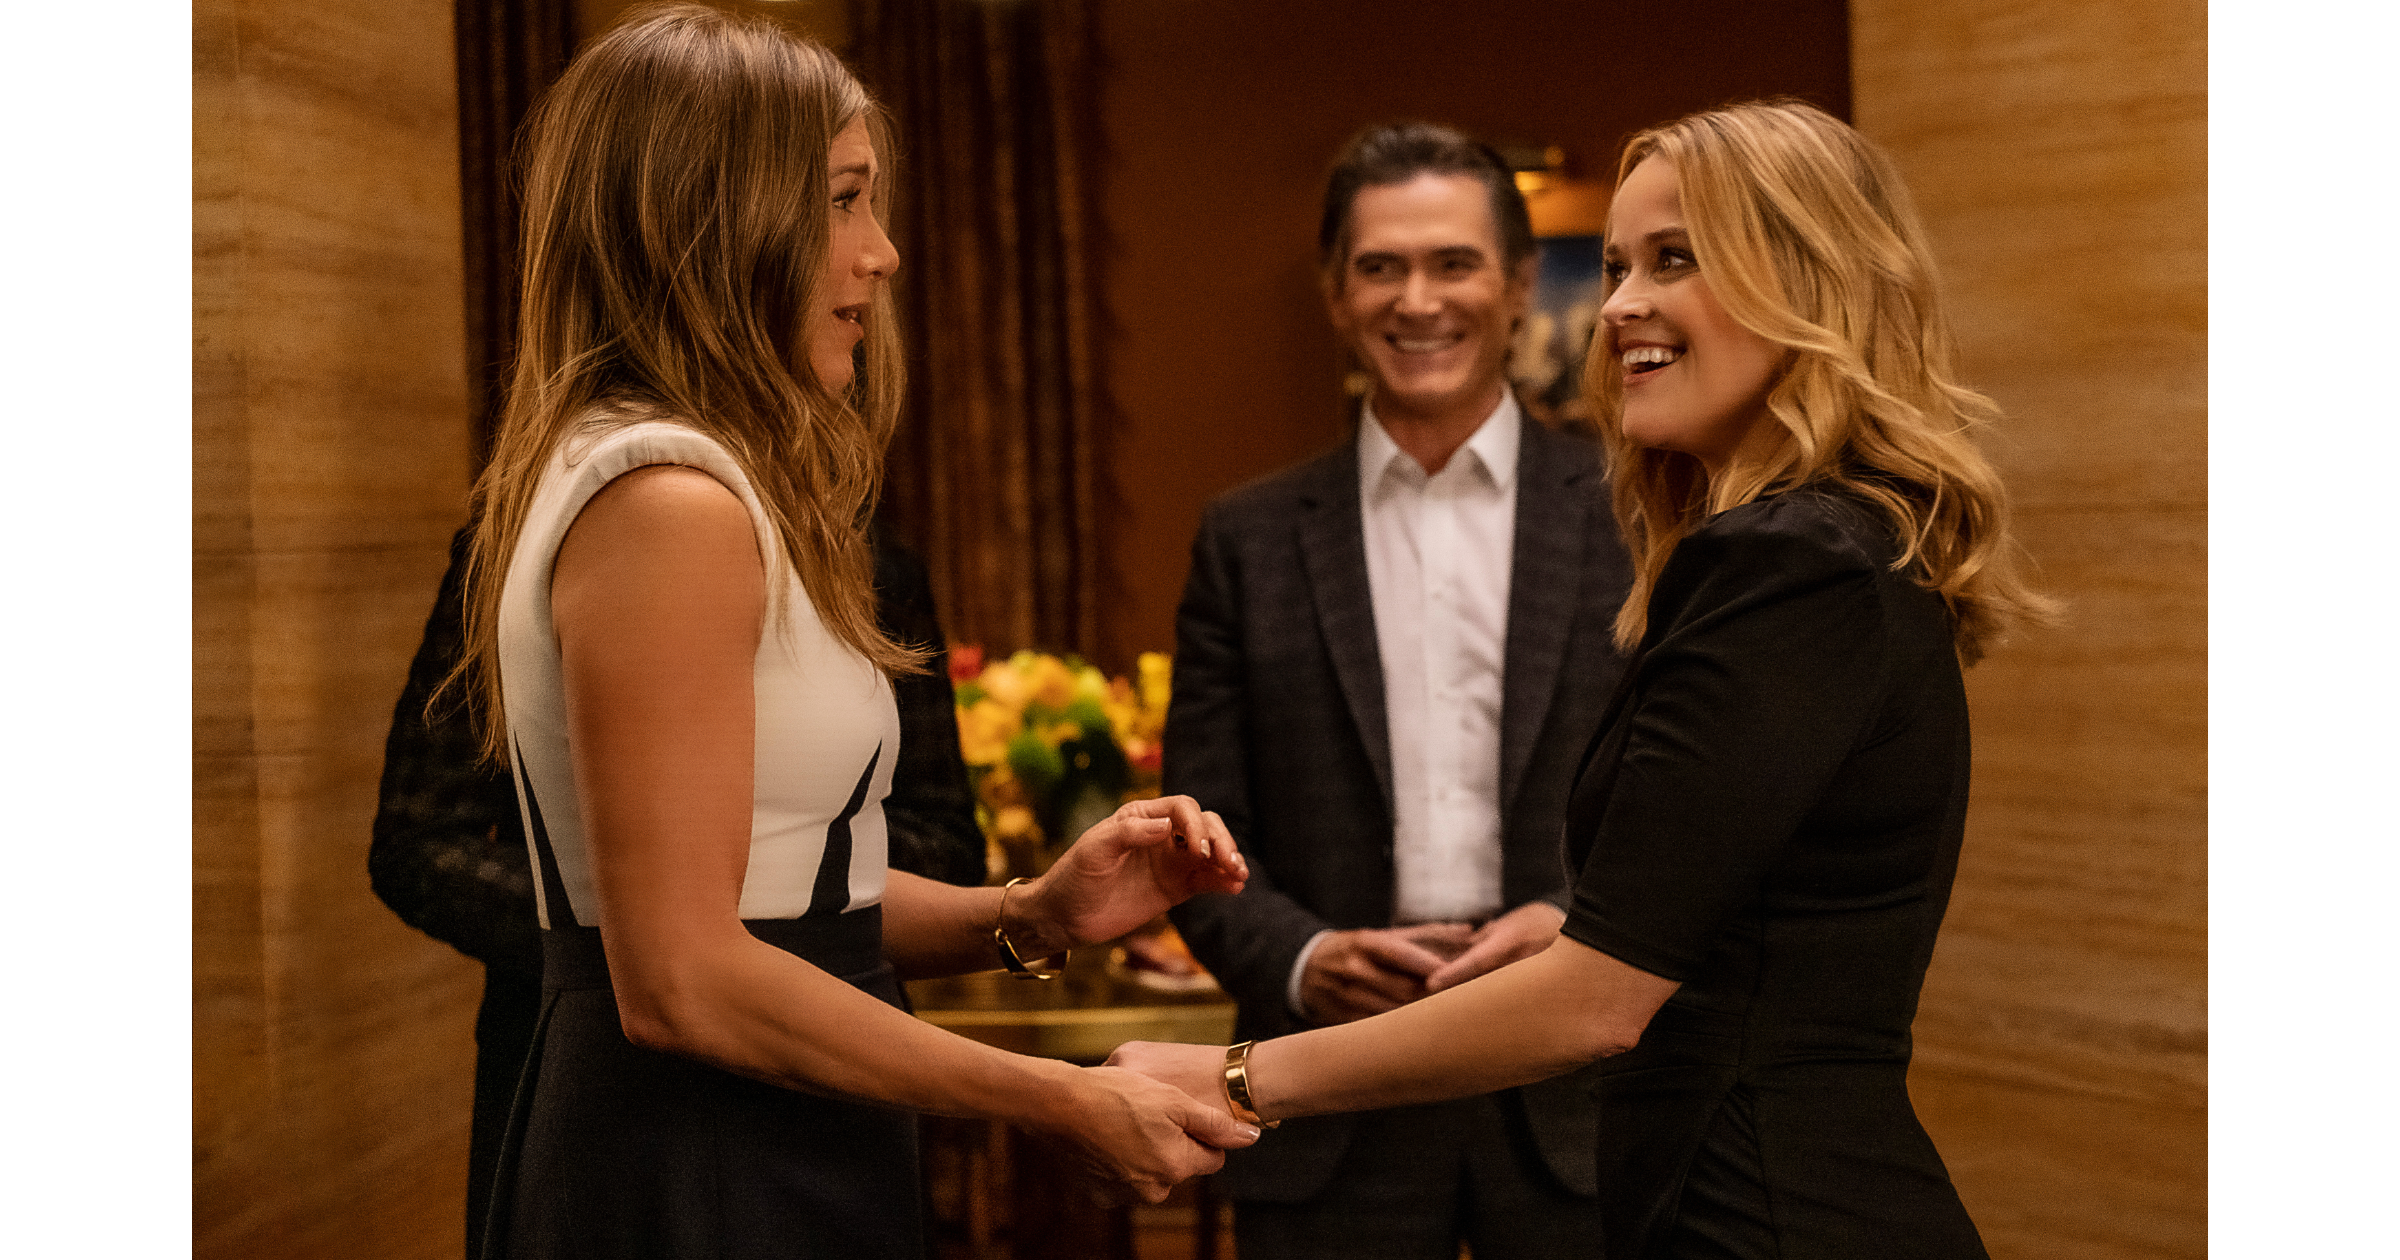 Jennifer Aniston Reese Witherspoon Billy Crudup The Morning Show Apple TV+